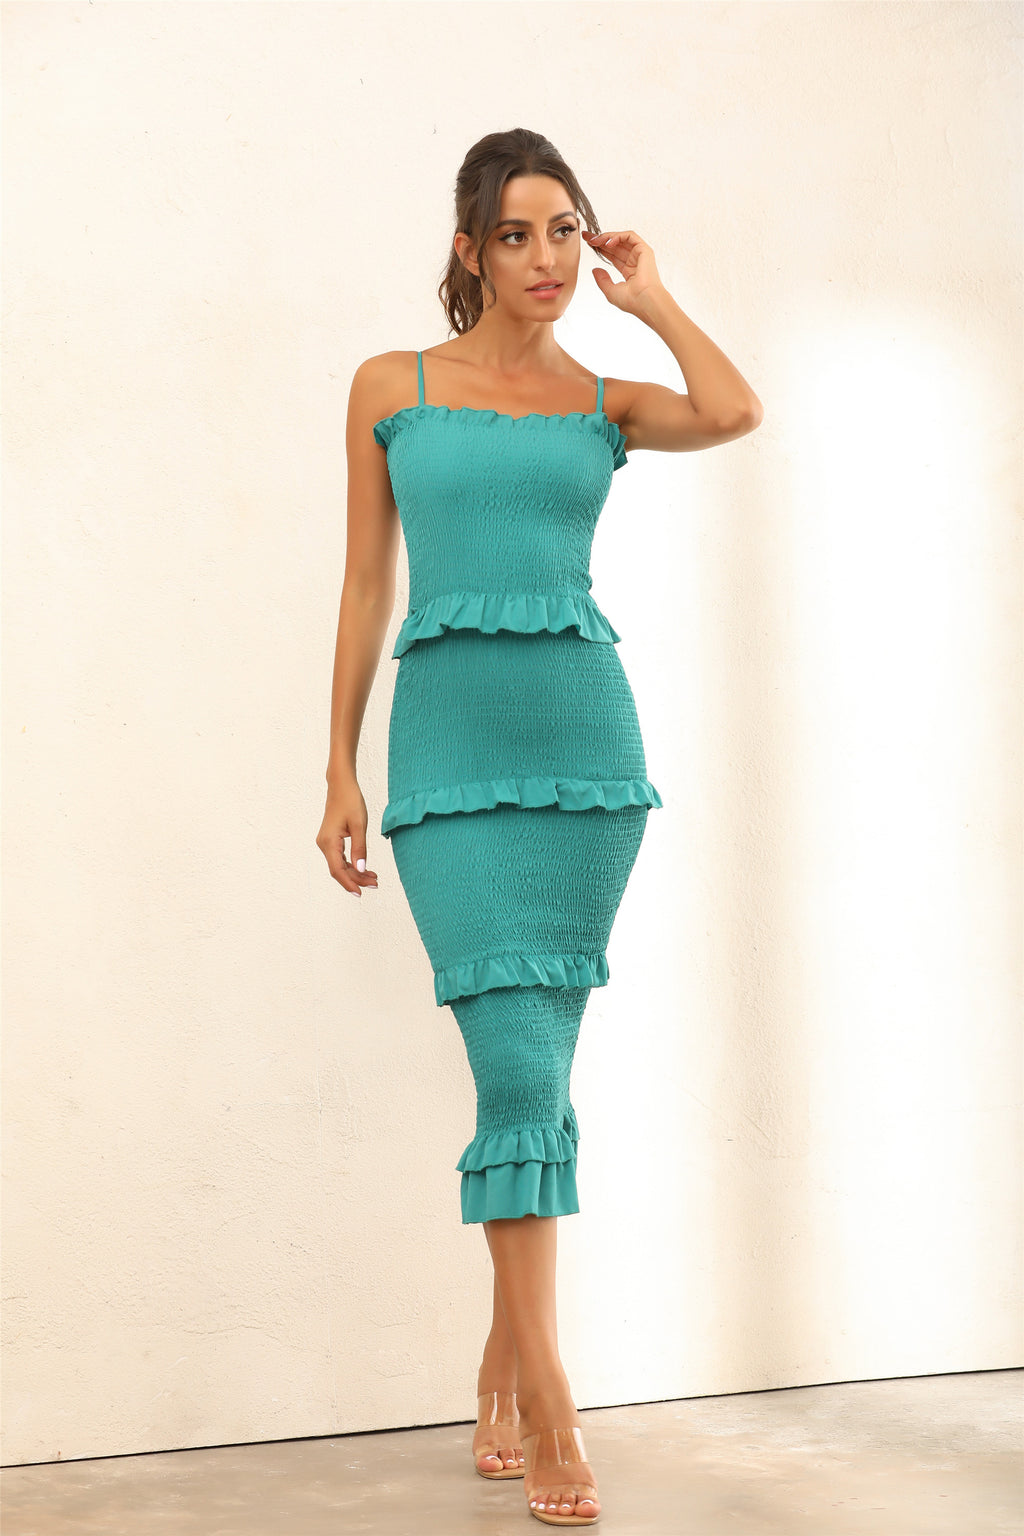 Ruffle Trim Shirred Bodycon Midi Dress In Teal - Miss Floral